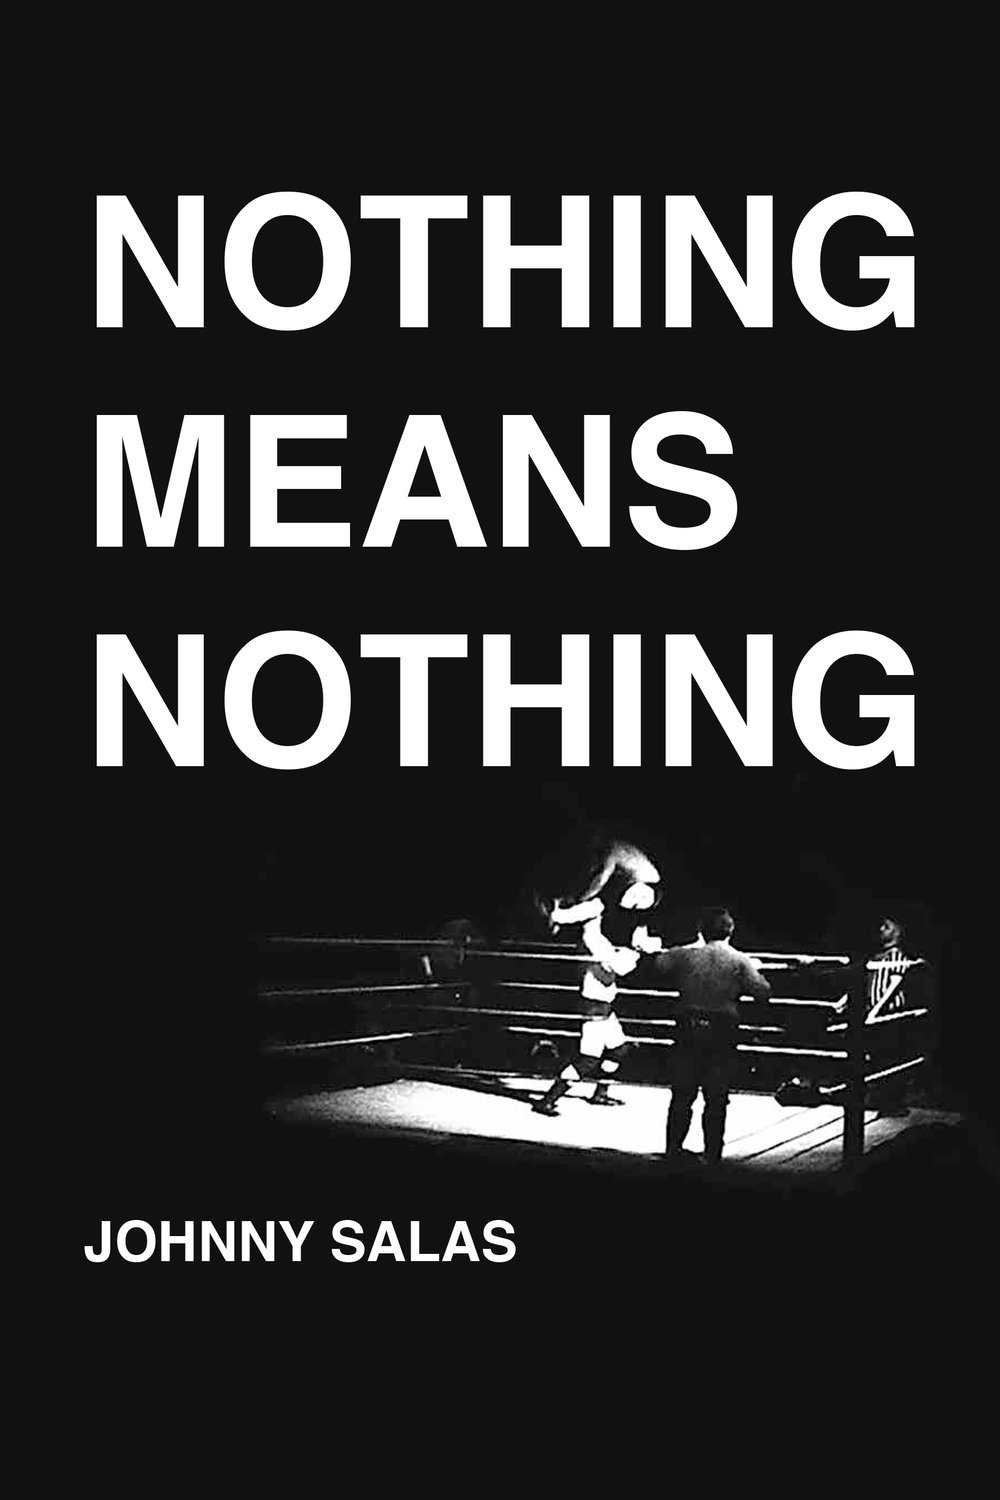 Nothing Means Nothing photos by Johnny Salas - Release Date January 1st, 2019